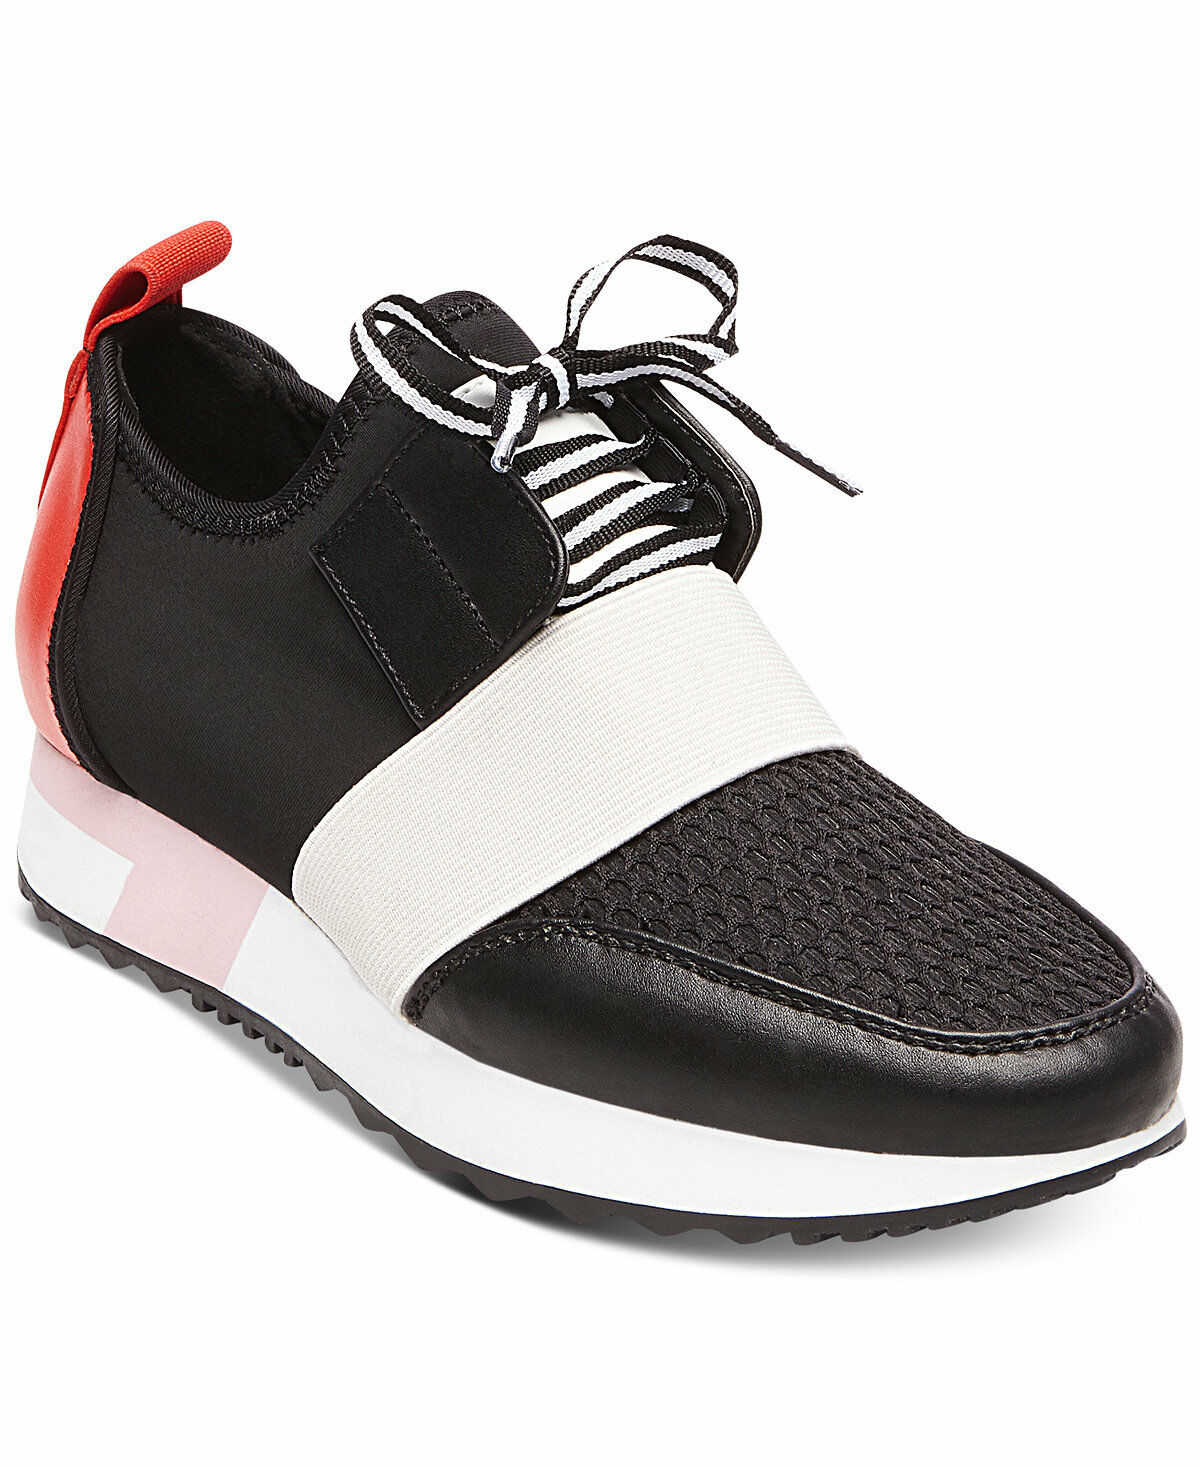 Steve Madden Antics Sneakers Athleisure Sporty shoes Black Red Multi Size 6.5